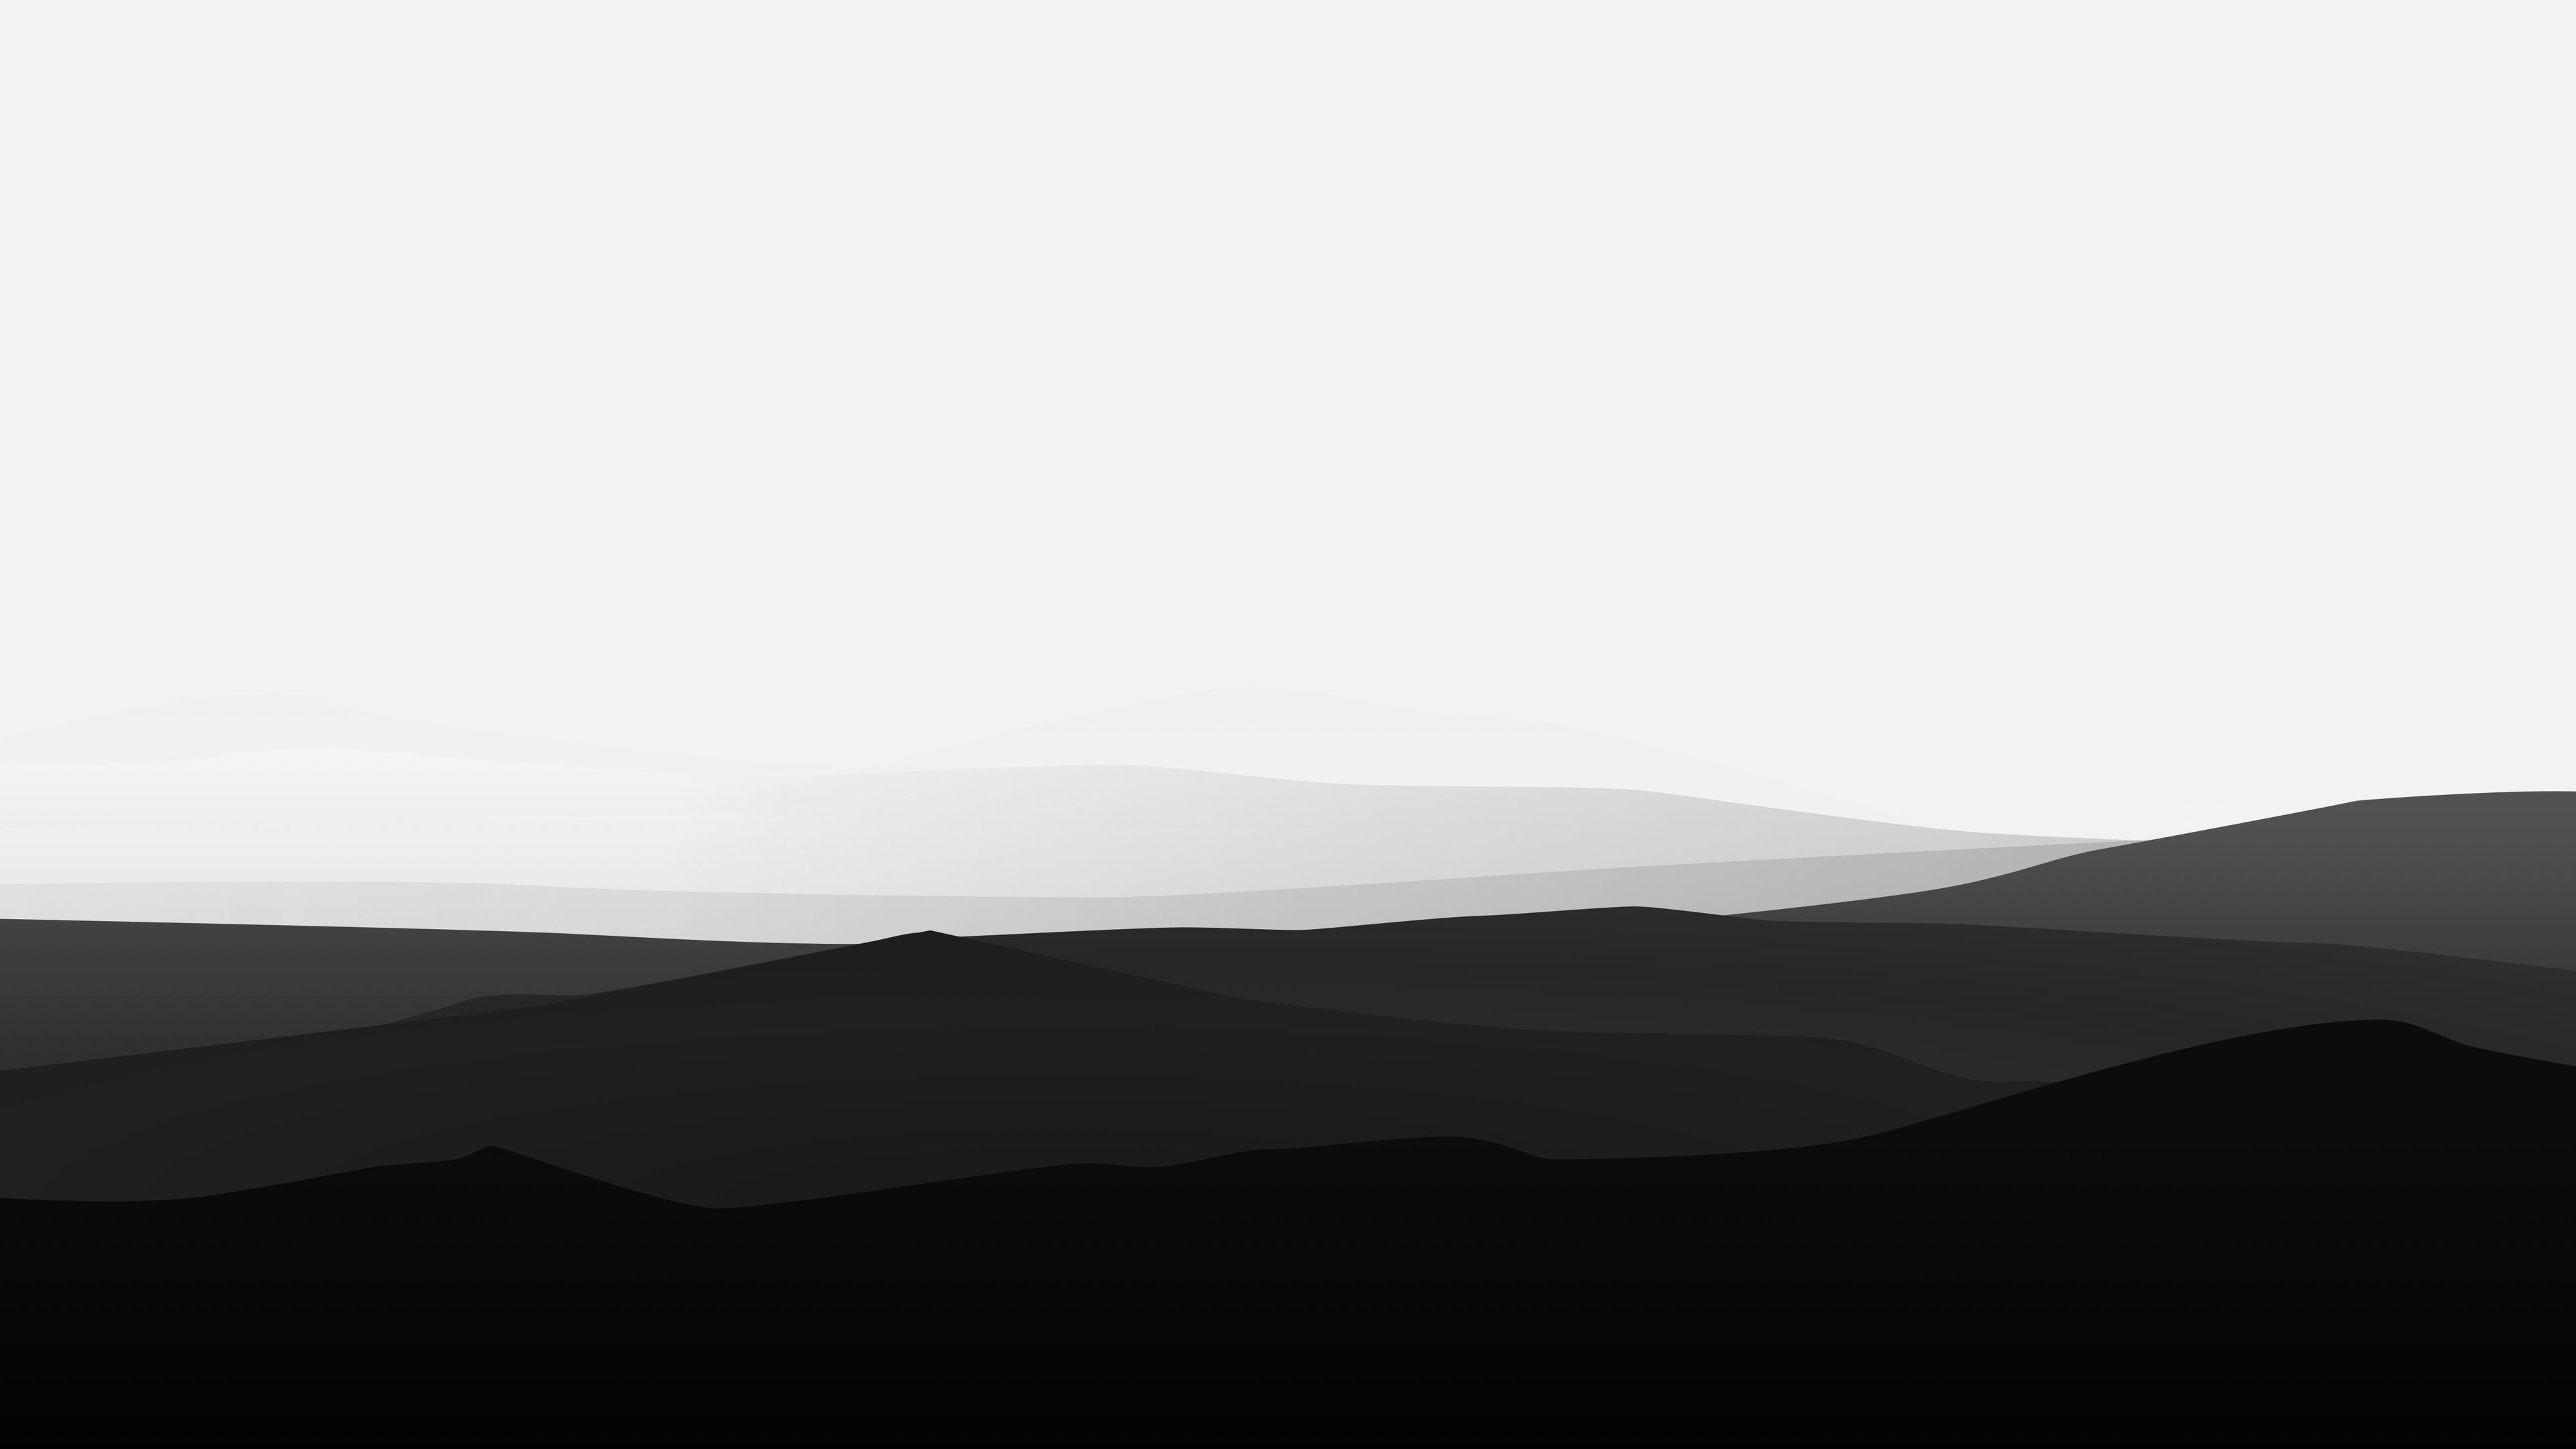 Minimalist Mountains Black And White 4k Mountains Wallpapers Monochrome Wallpap Desktop Wallpaper Black Minimalist Desktop Wallpaper Black And White Wallpaper